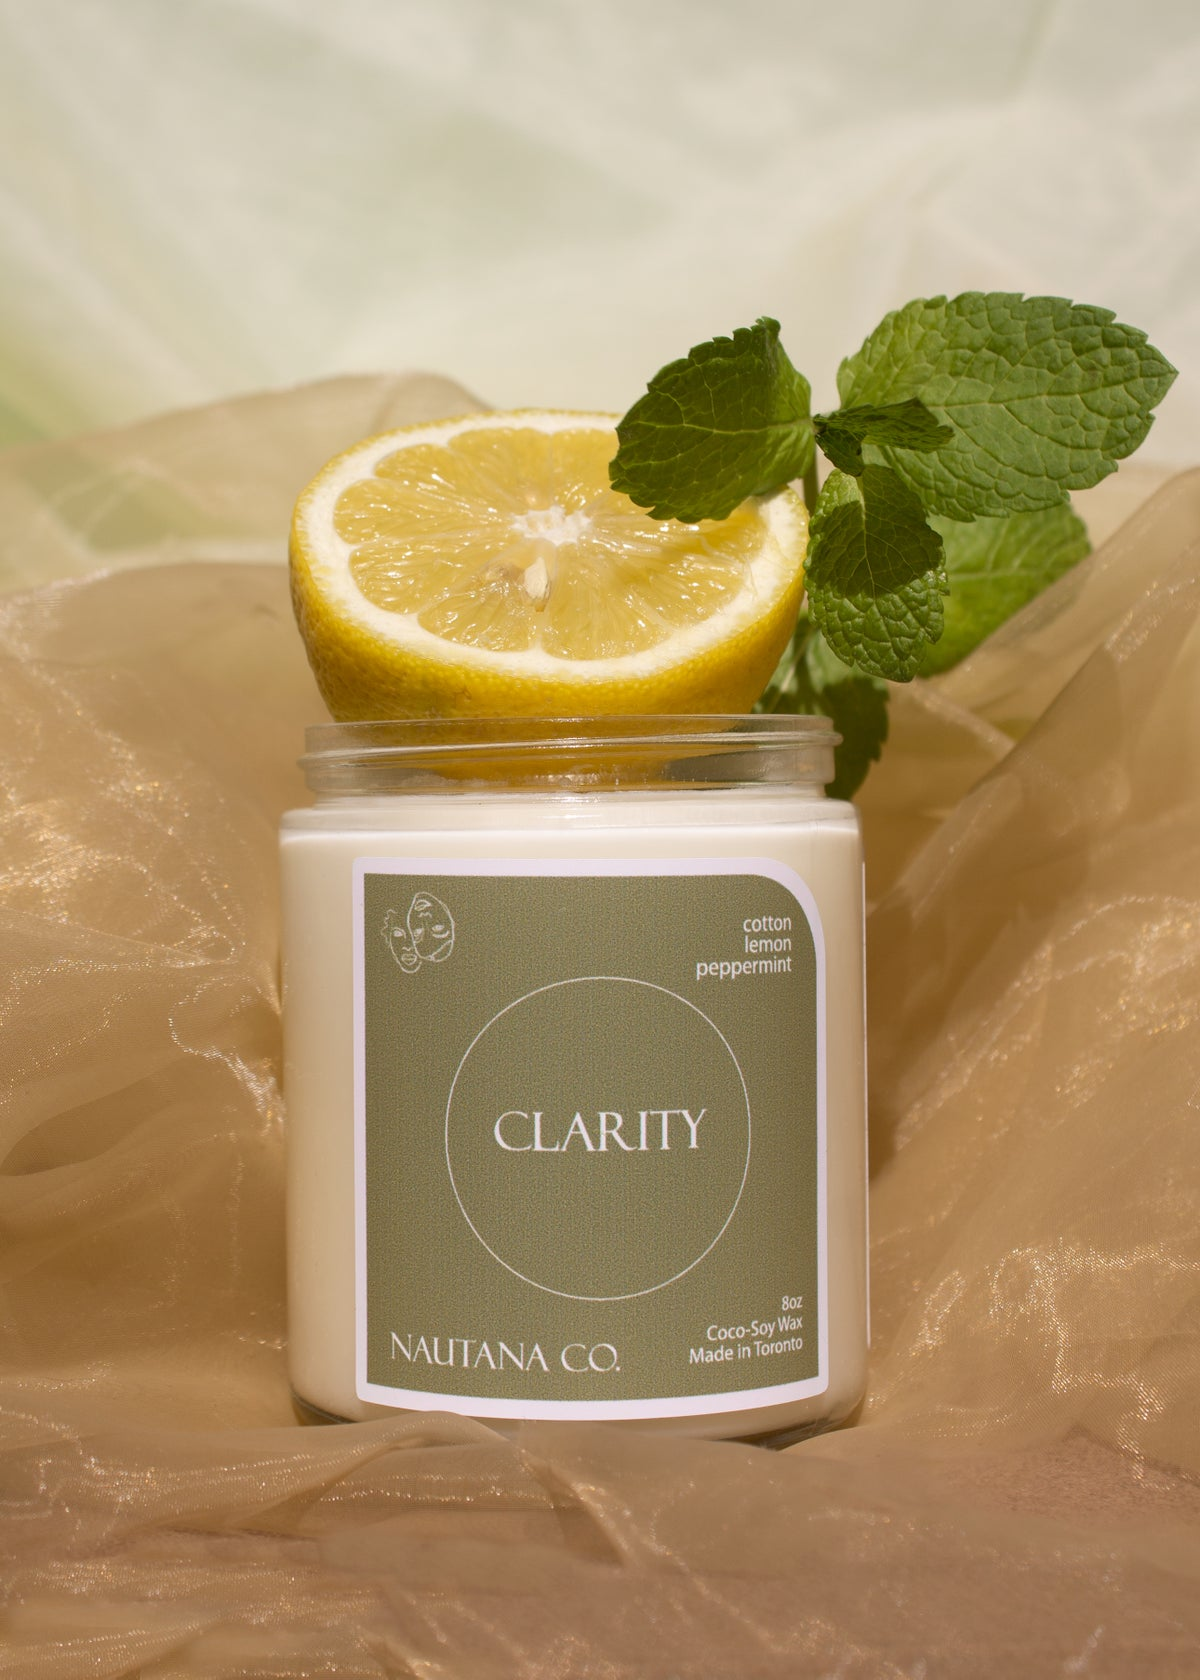 Image of Clarity - Lemon & Peppermint Candle